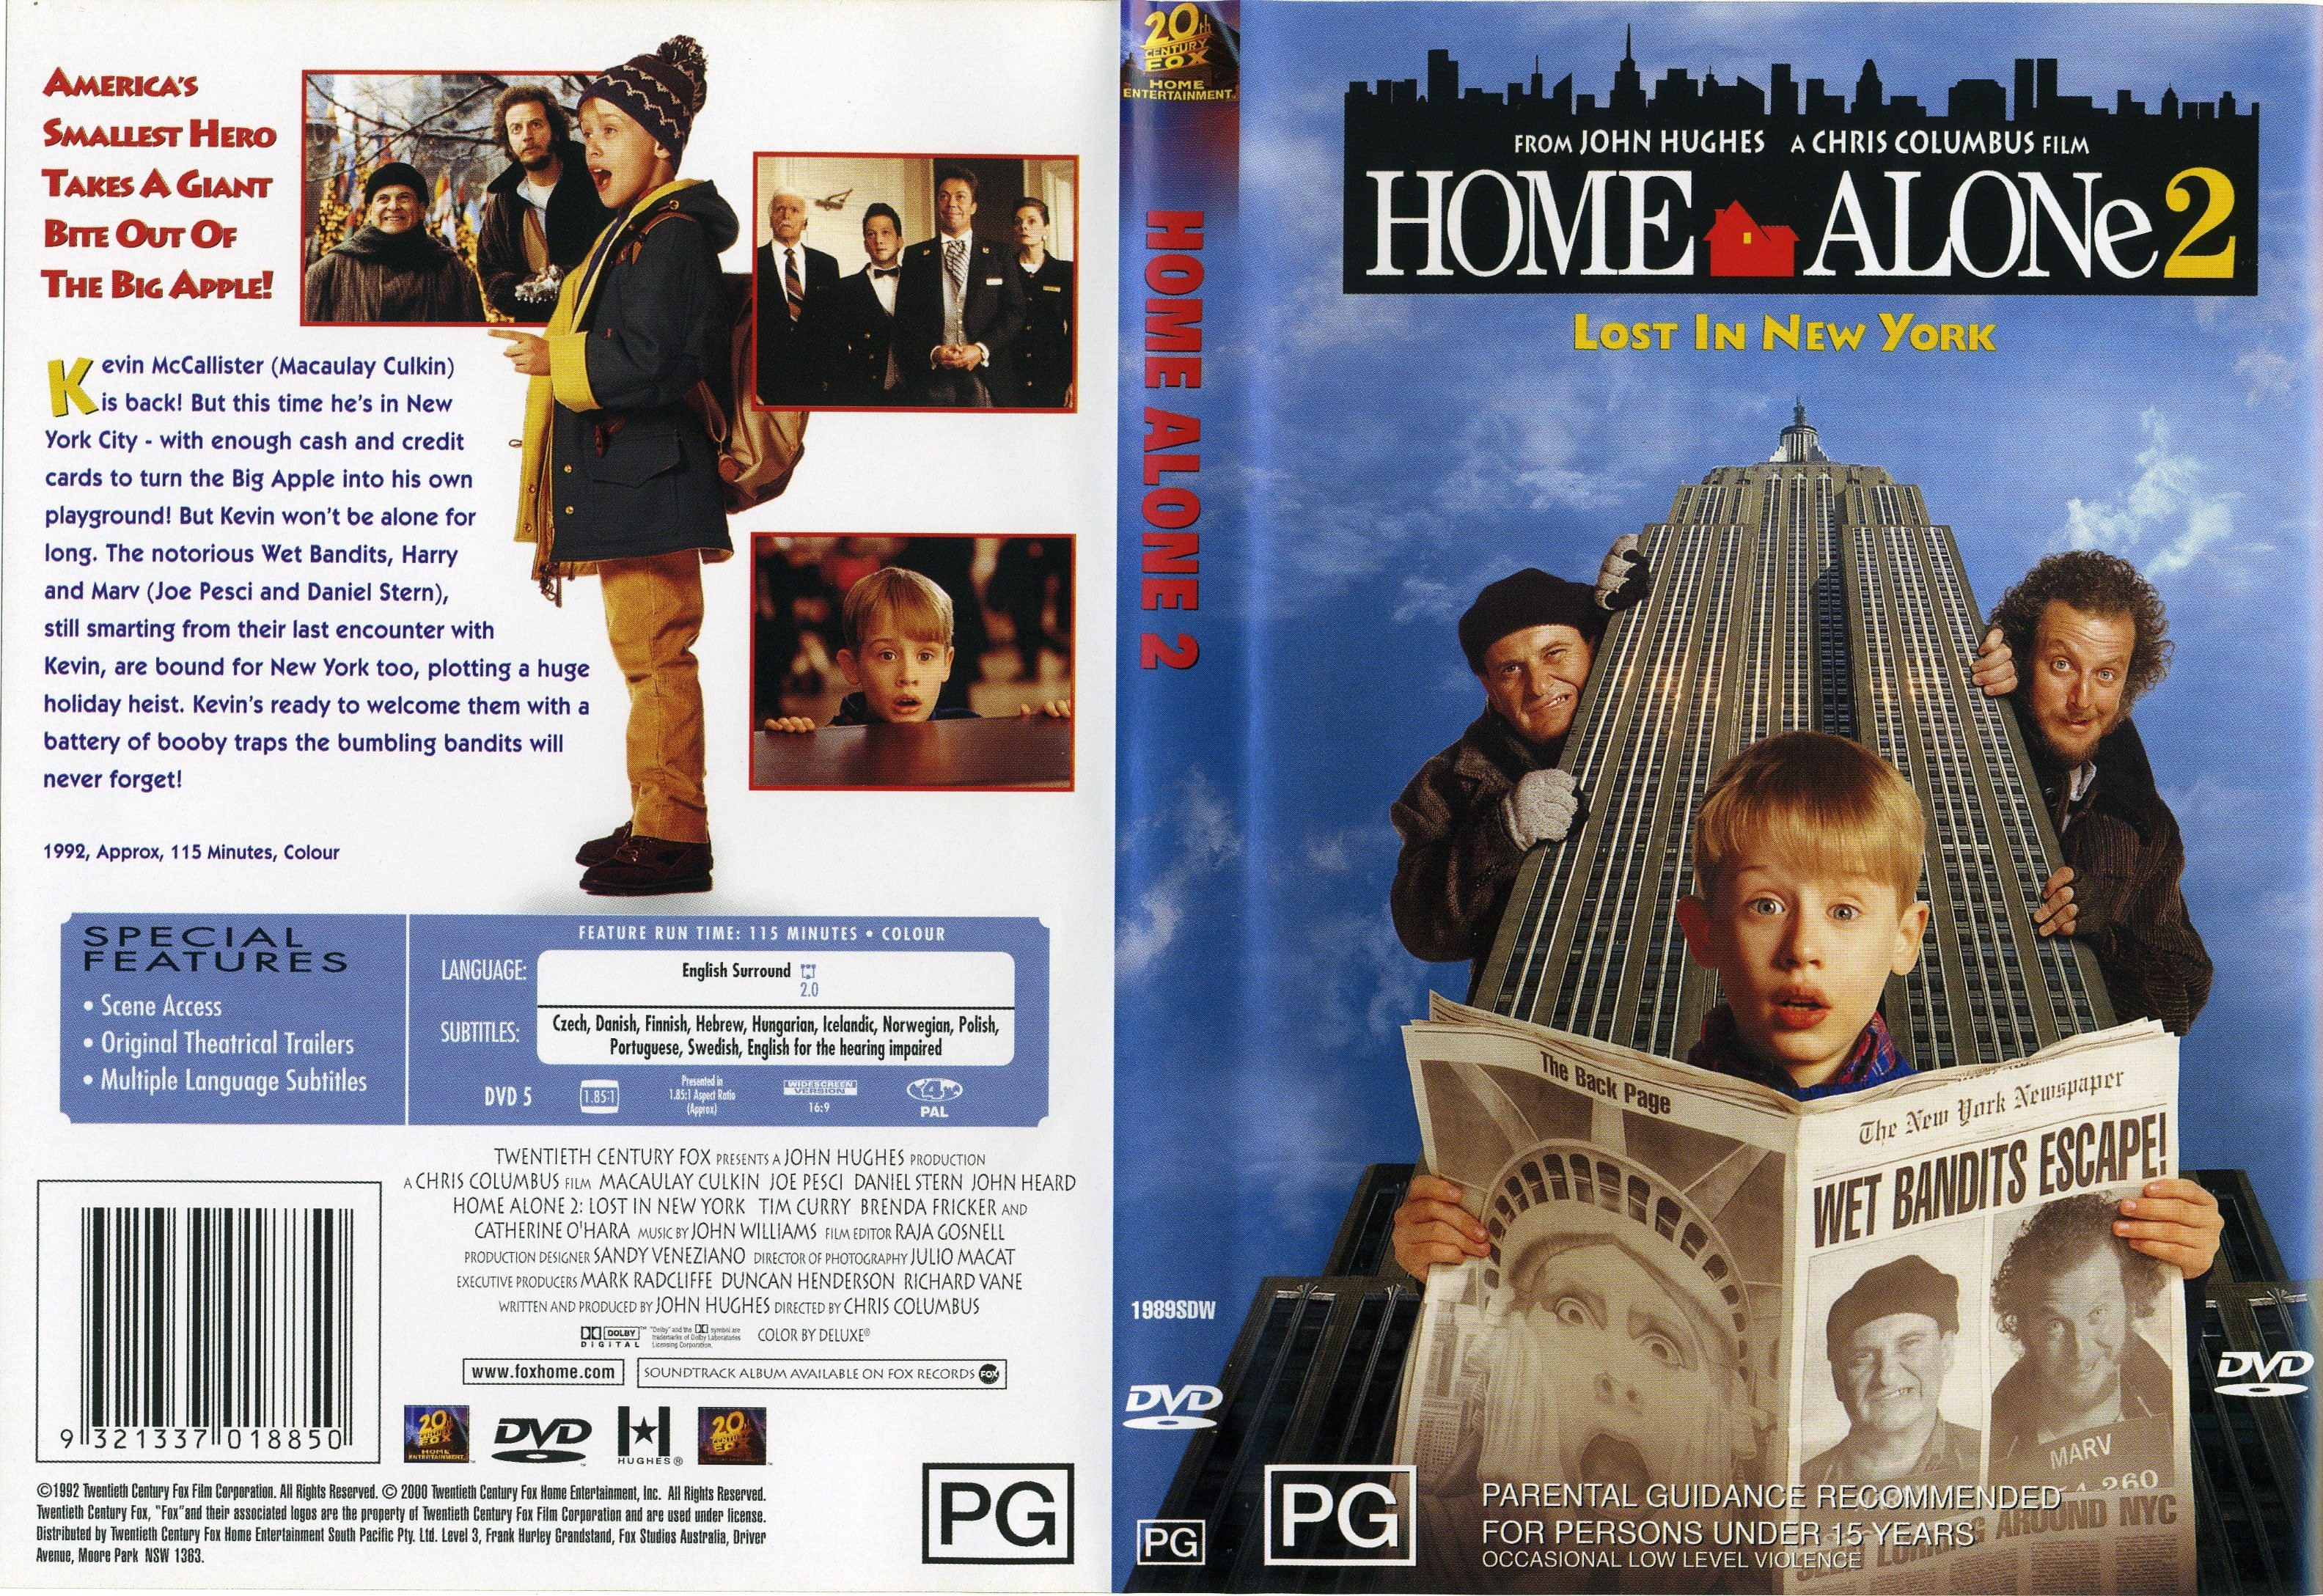 The DVD Cover for প্রথমপাতা Alone 2